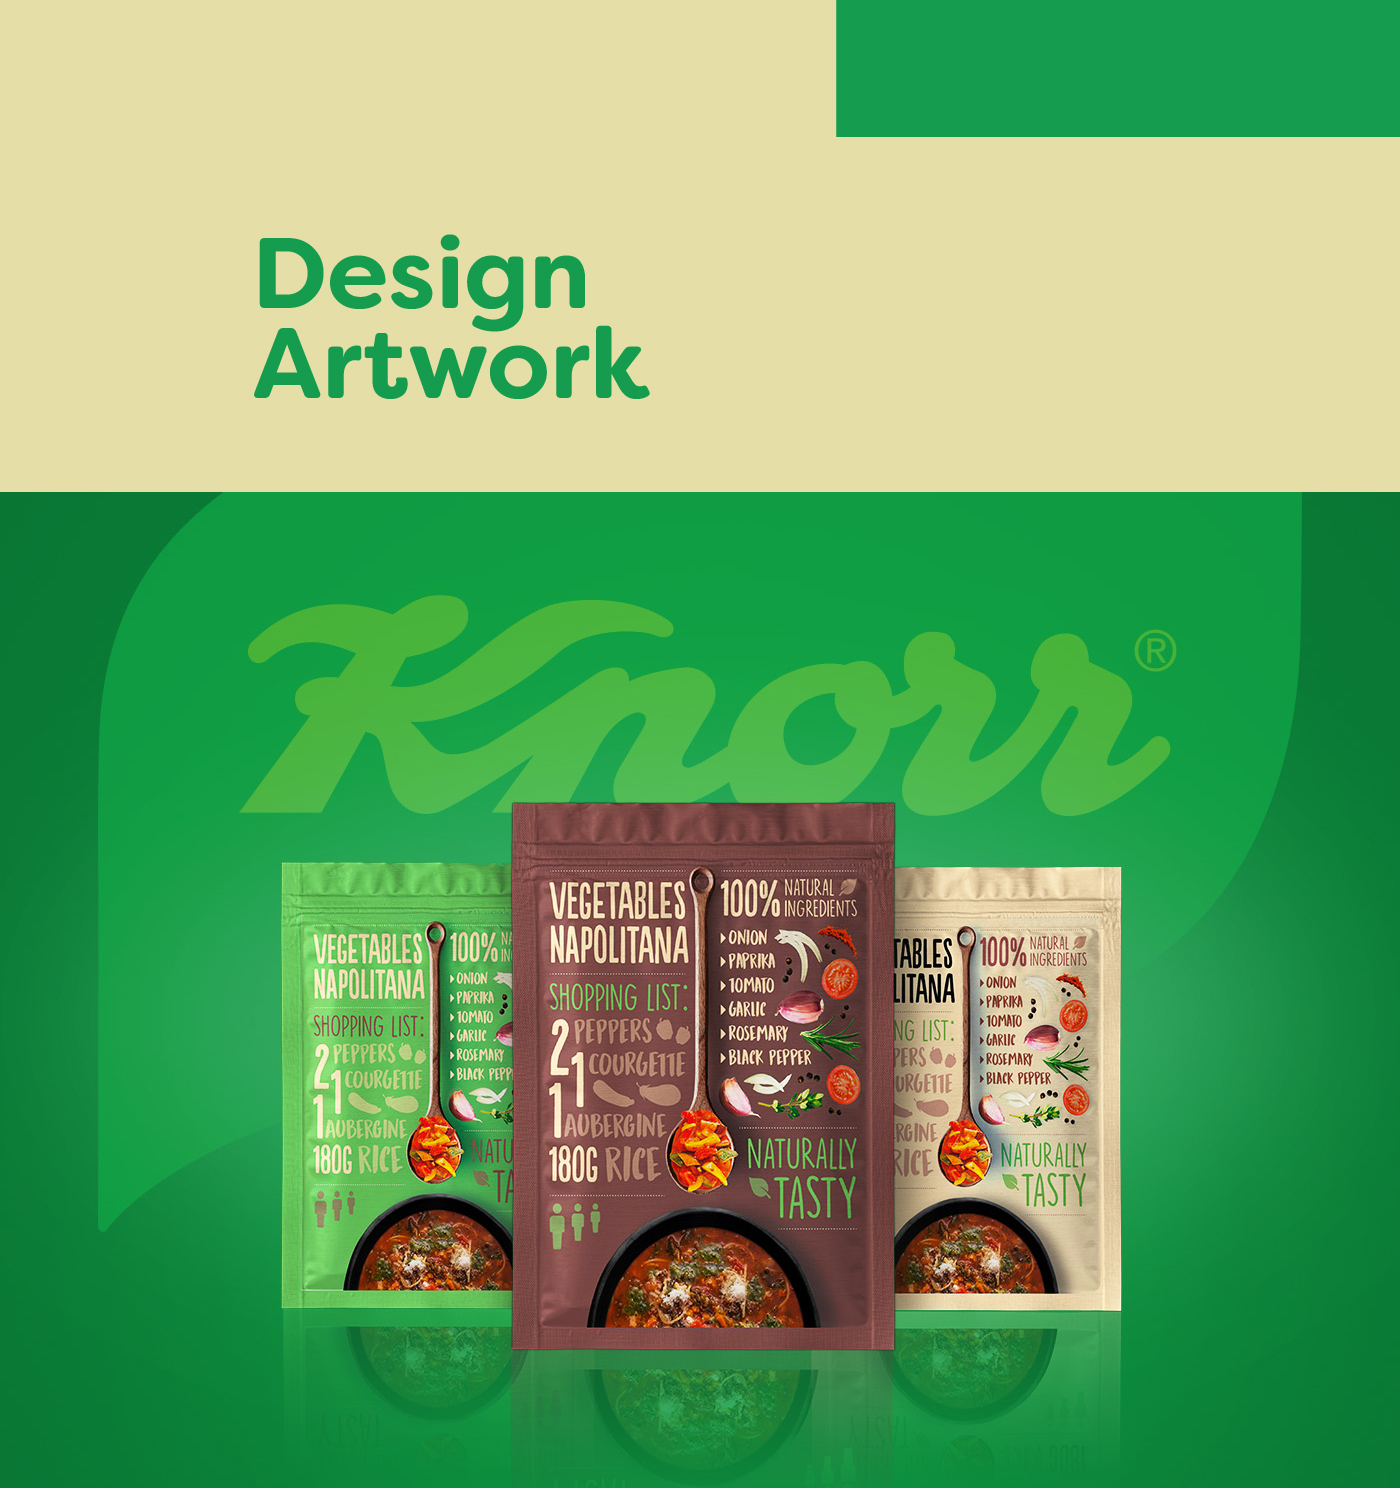 Design Artwork